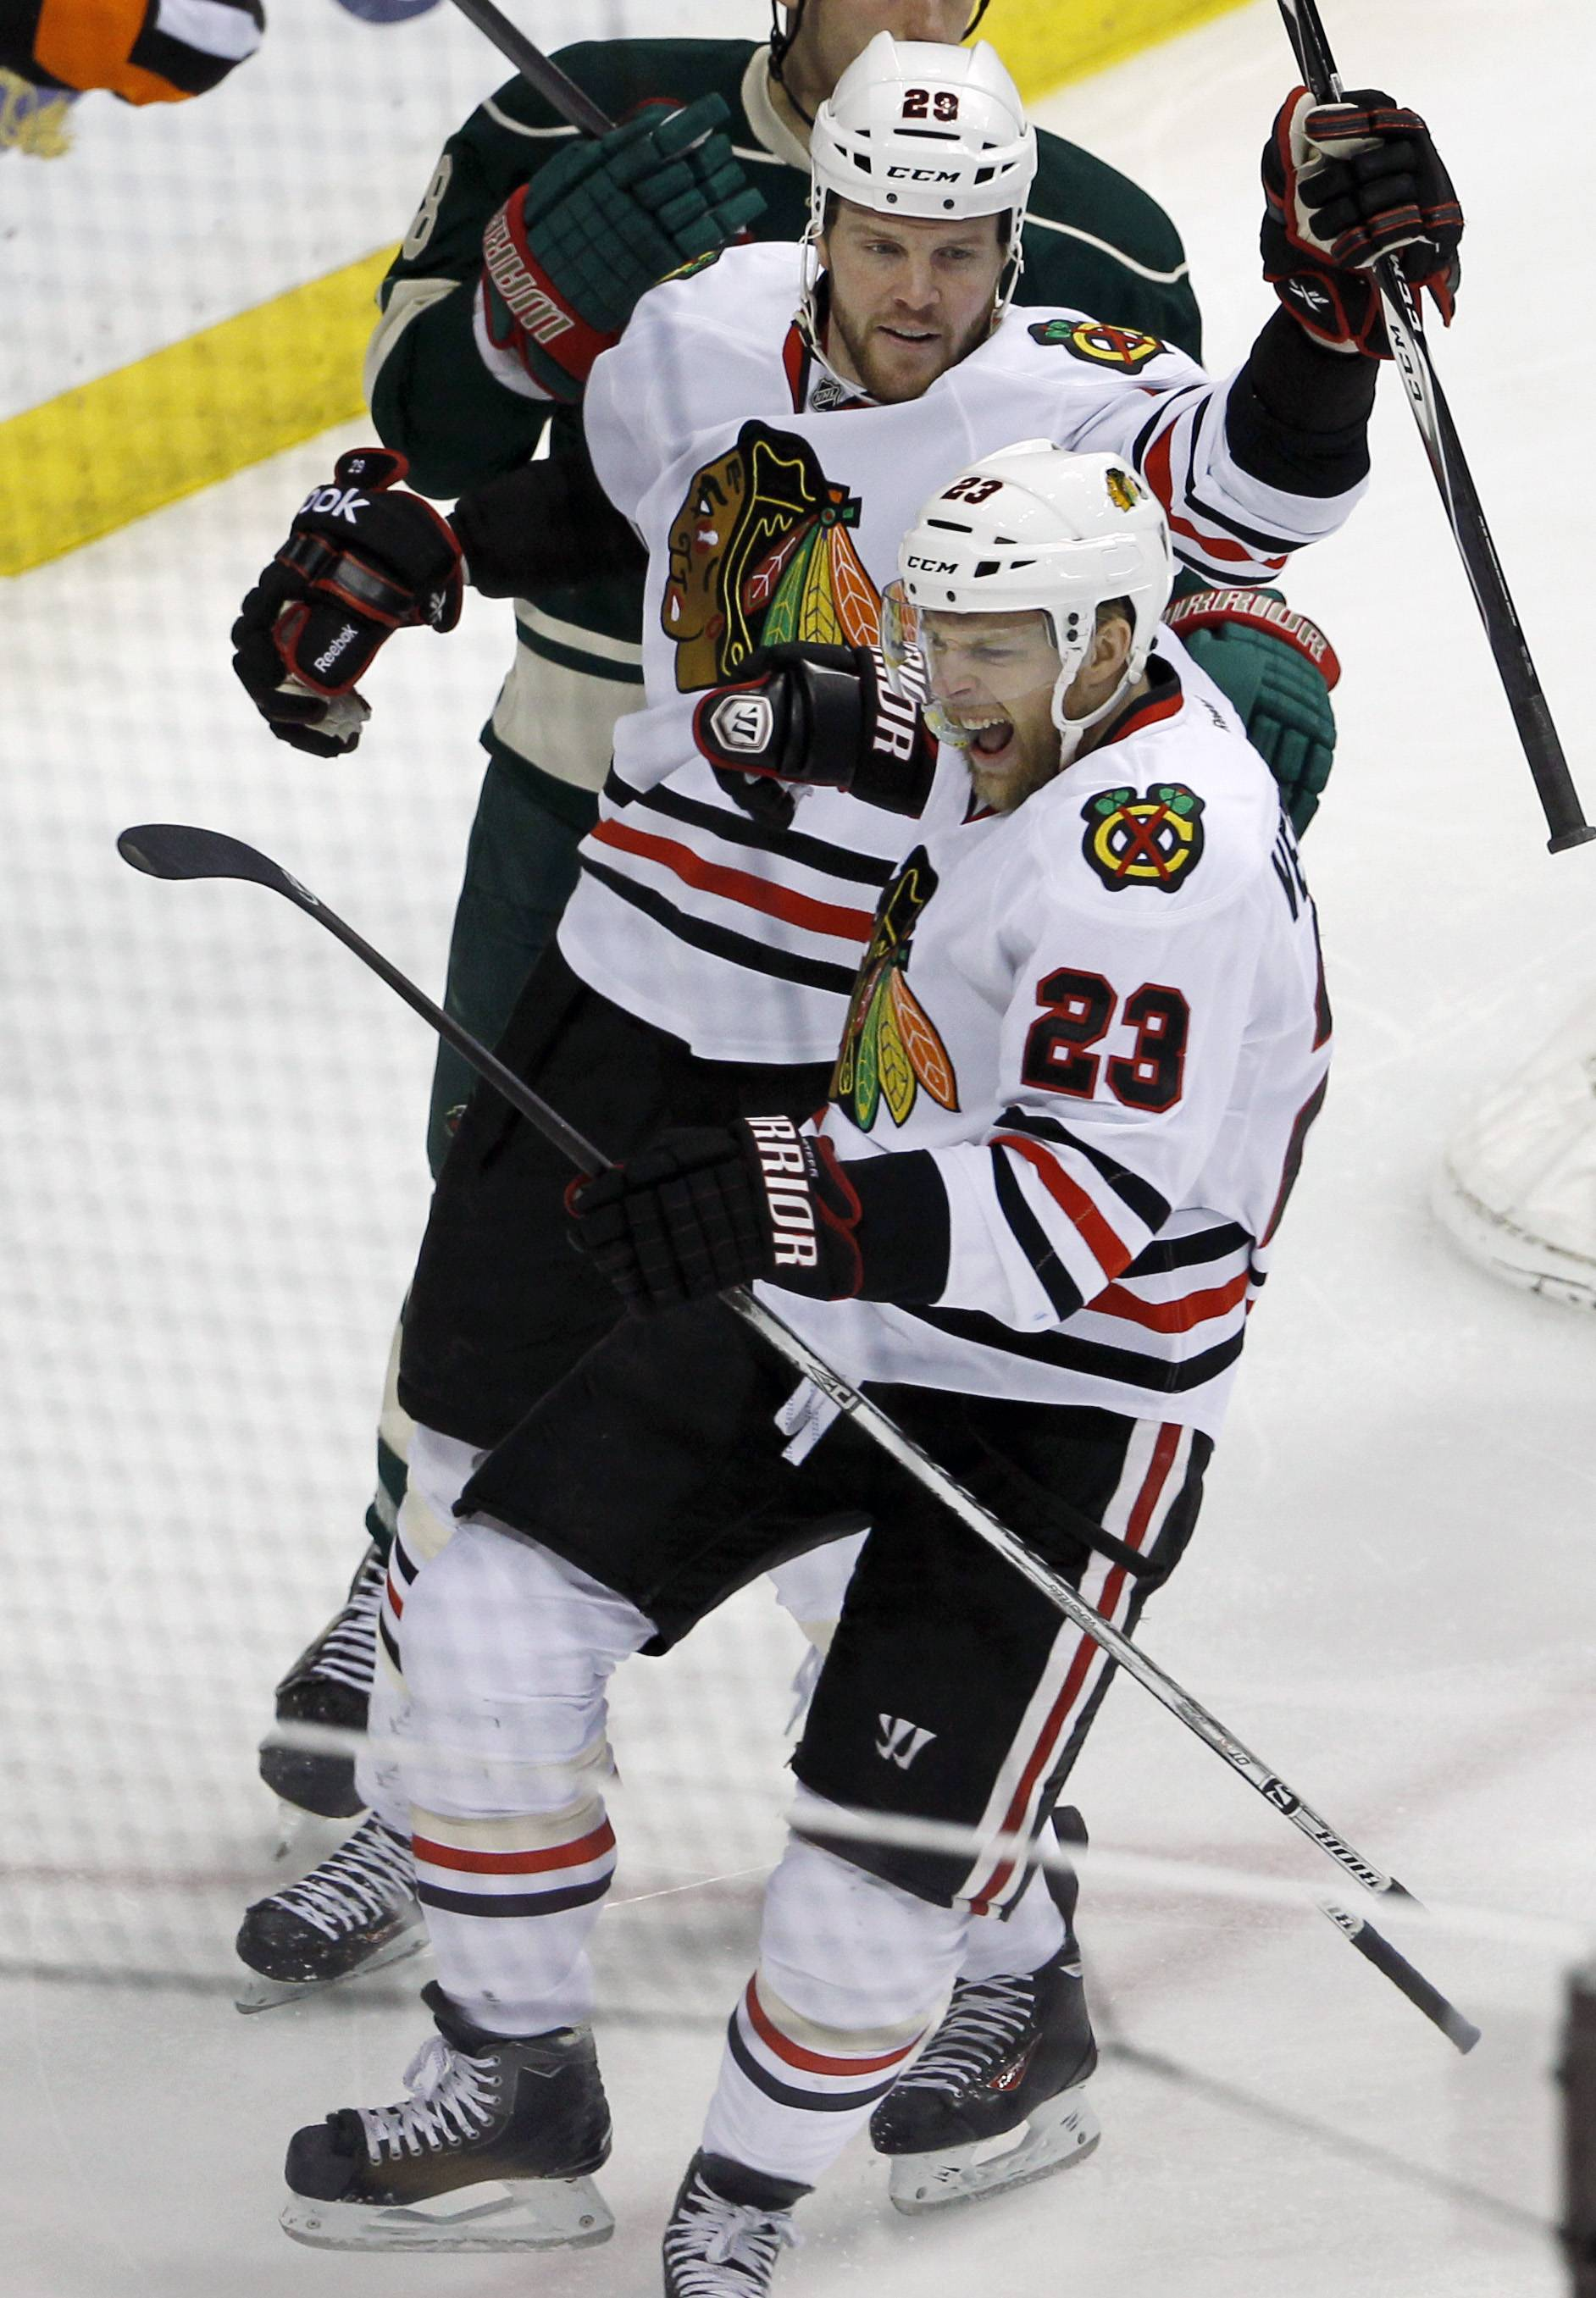 Chicago Blackhawks right wing Kris Versteeg (23) reacts in front of Blackhawks left wing Brandon Saad (20) after scoring on Minnesota Wild goalie Ilya Bryzgalov during the first period of Game 6 of an NHL hockey second-round playoff series in St. Paul, Minn., Tuesday, May 13, 2014.